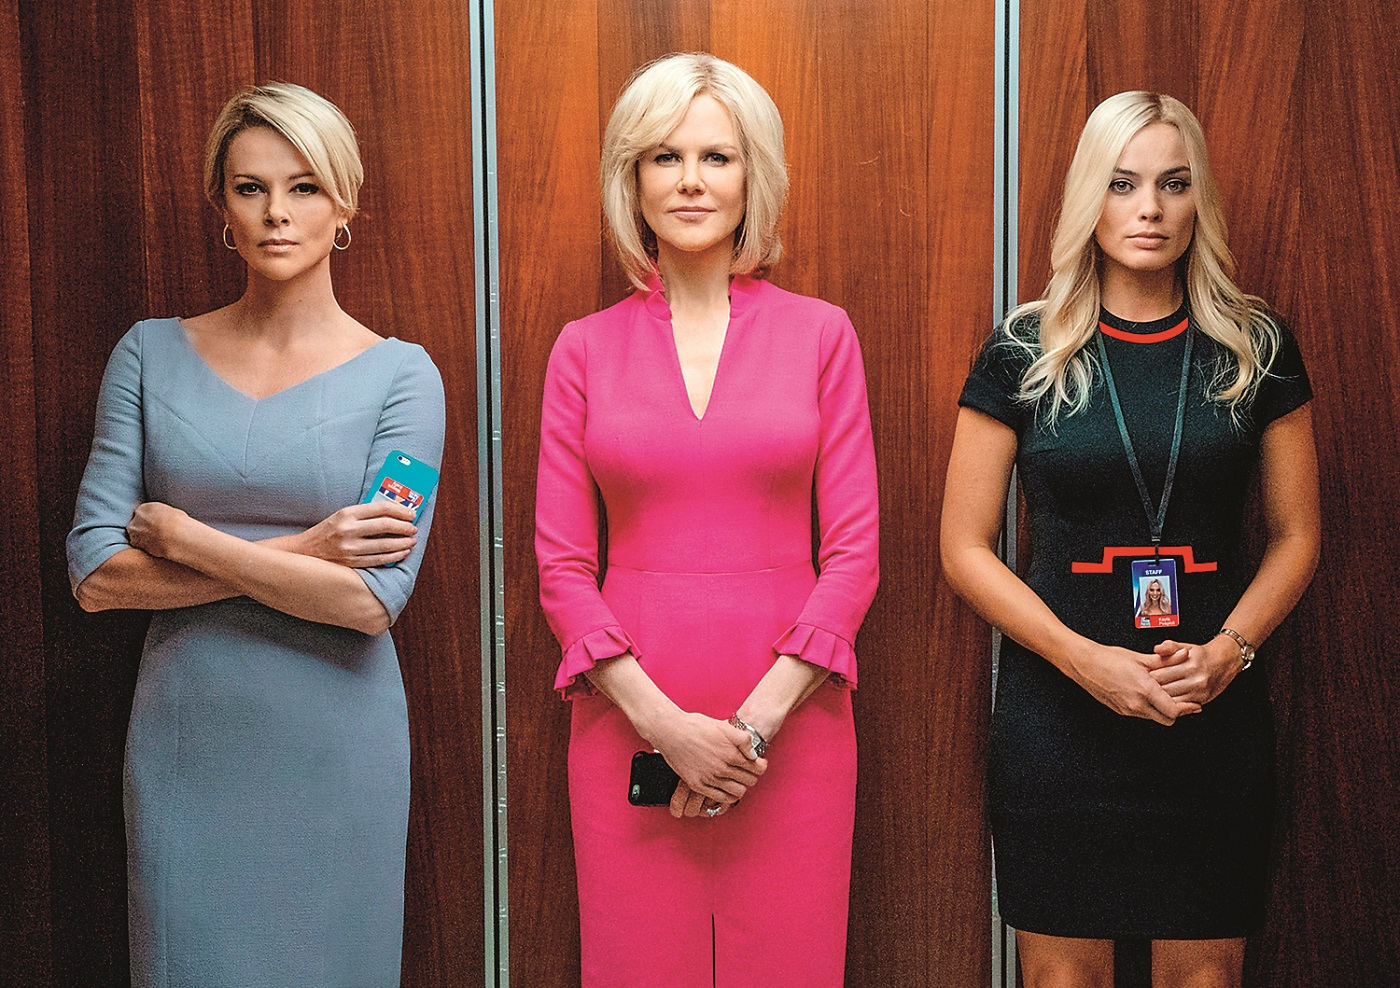 BOMBSHELL, from left: Charlize Theron as Megyn Kelly, Nicole Kidman as Gretchen Carlson, Margot Robbie as Kayla Pospisil, 2019. ph: Hilary Bronwyn Gayle / © Lionsgate / courtesy Everett Collection